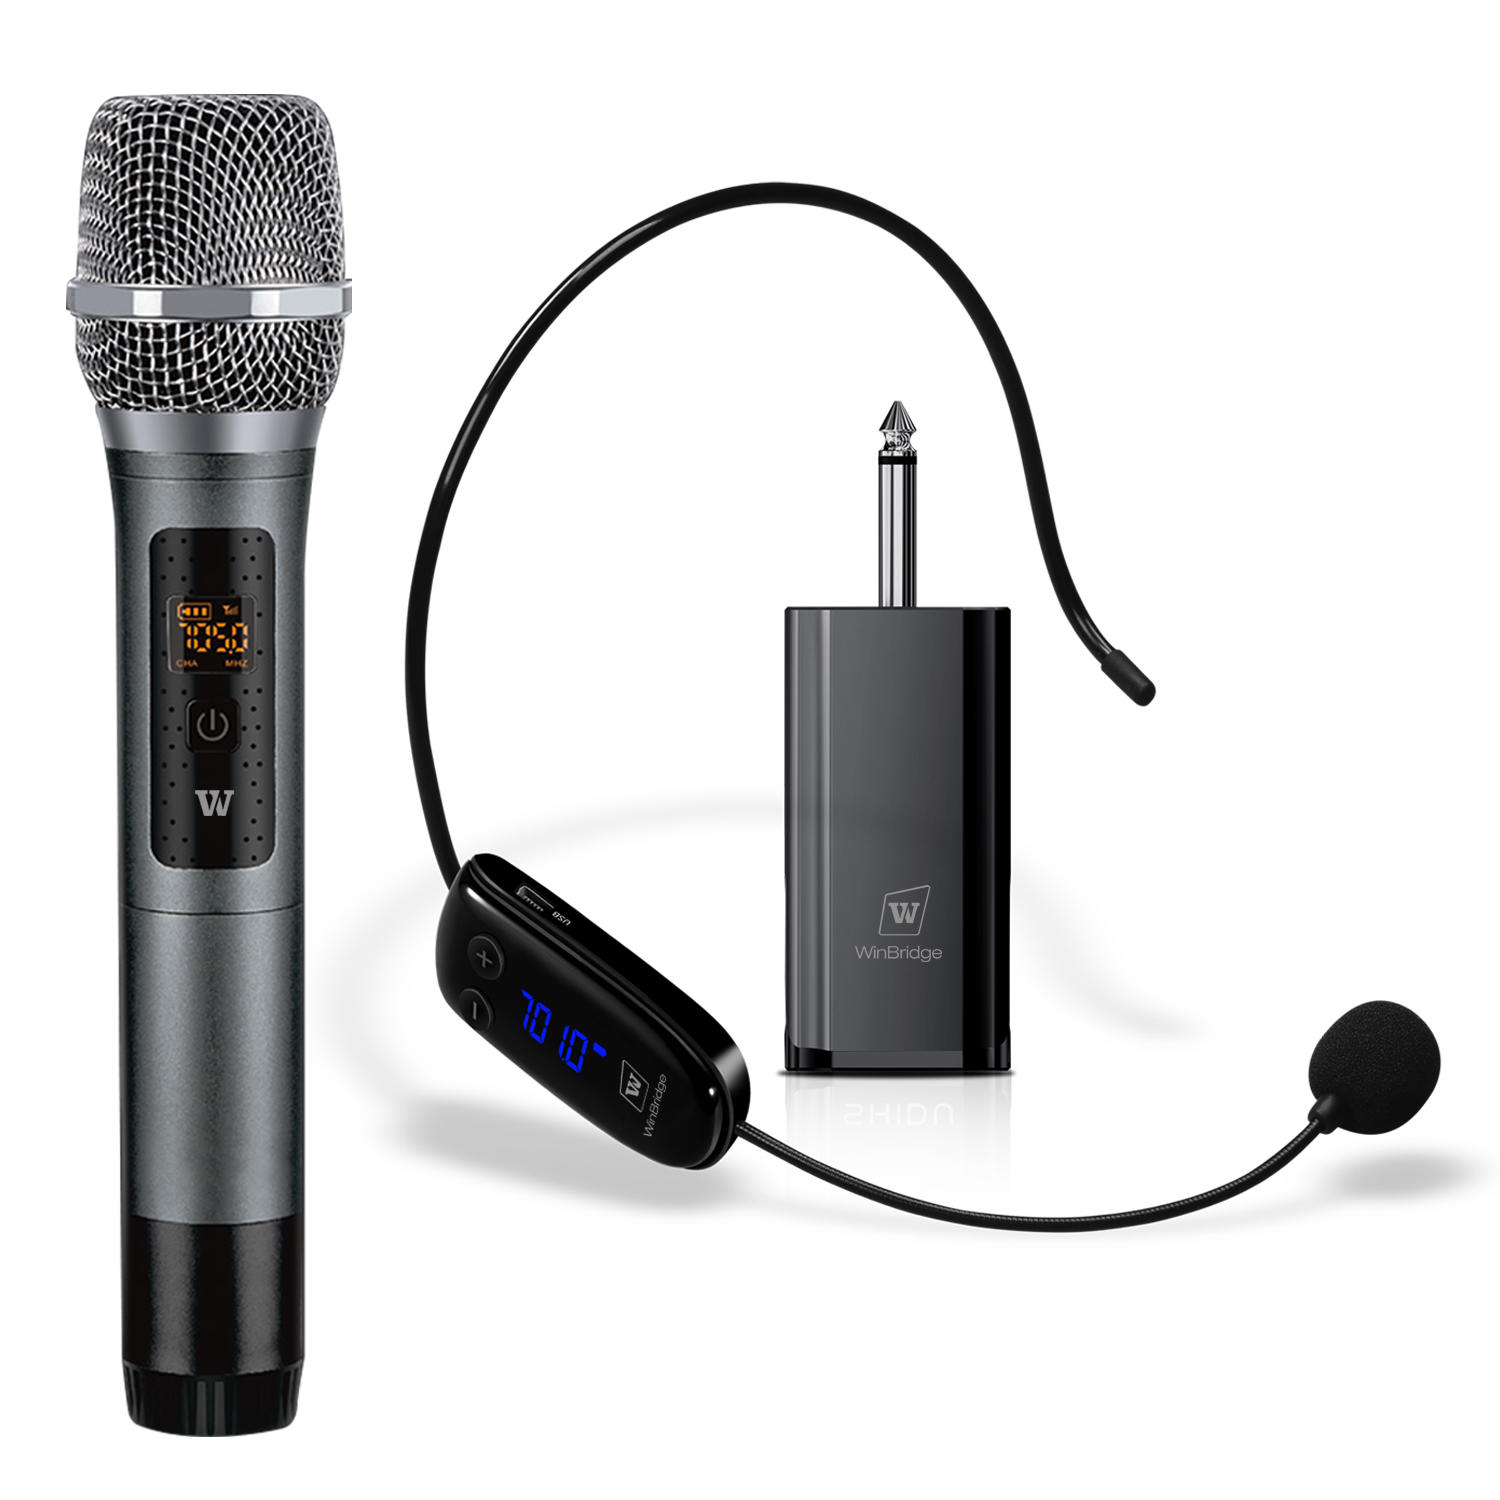 WinBridge WB032 Portable Wireless UHF Headset And Handheld Dual Microphone With Receiver